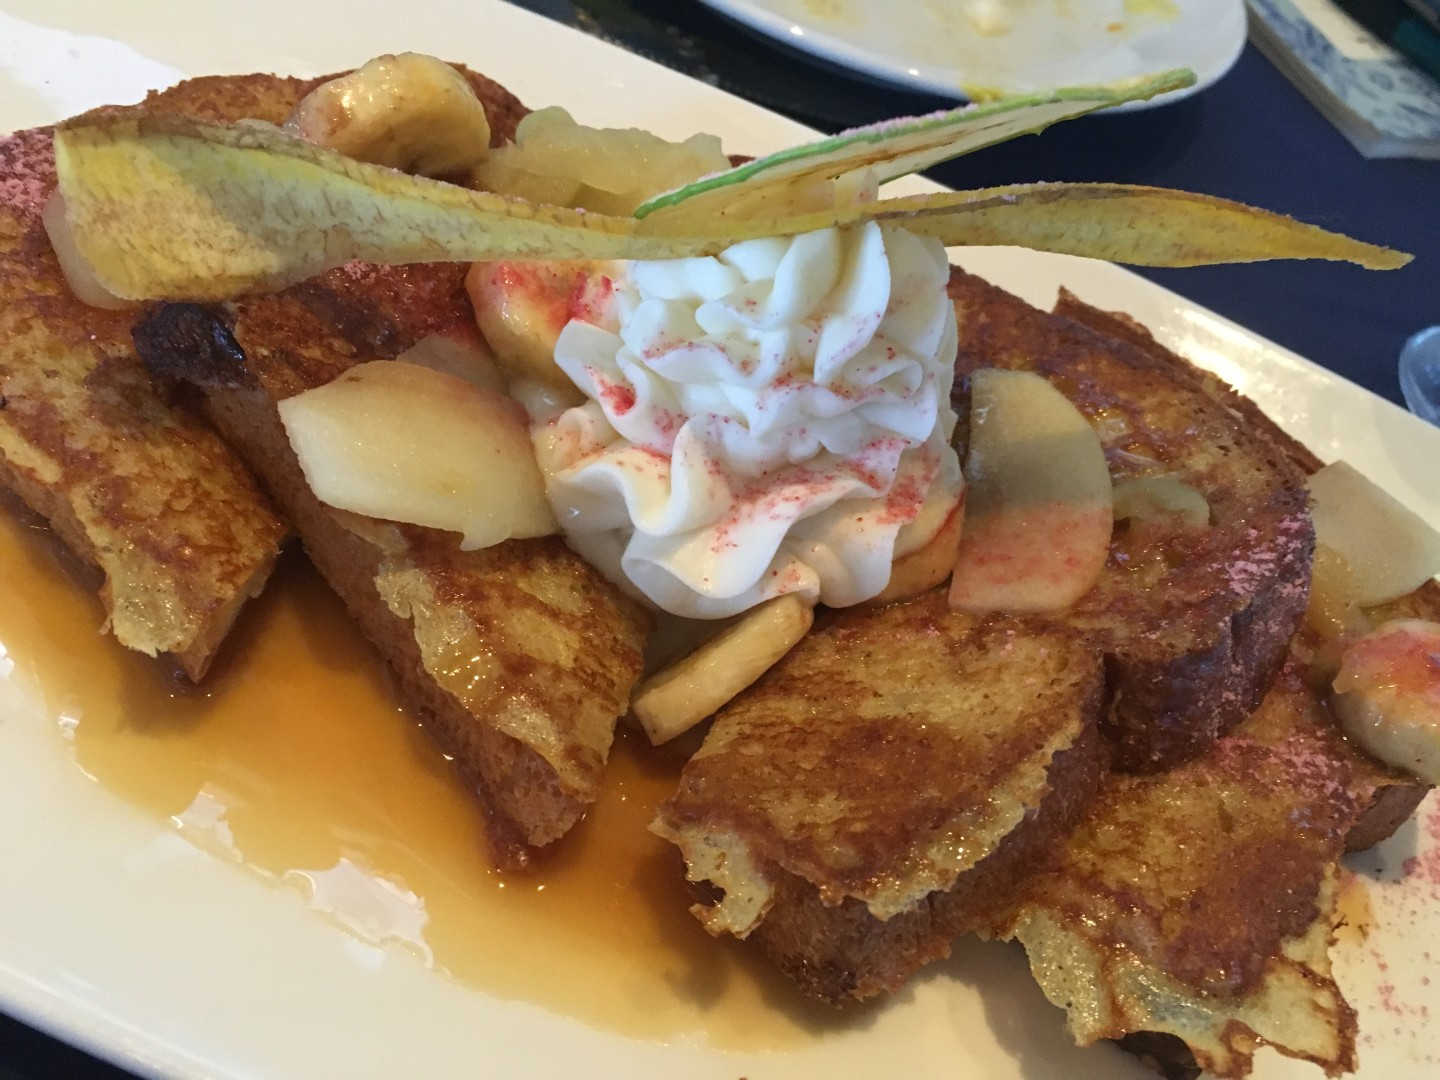 Brunch at Disney World's Narcoossee's includes banana french toast.